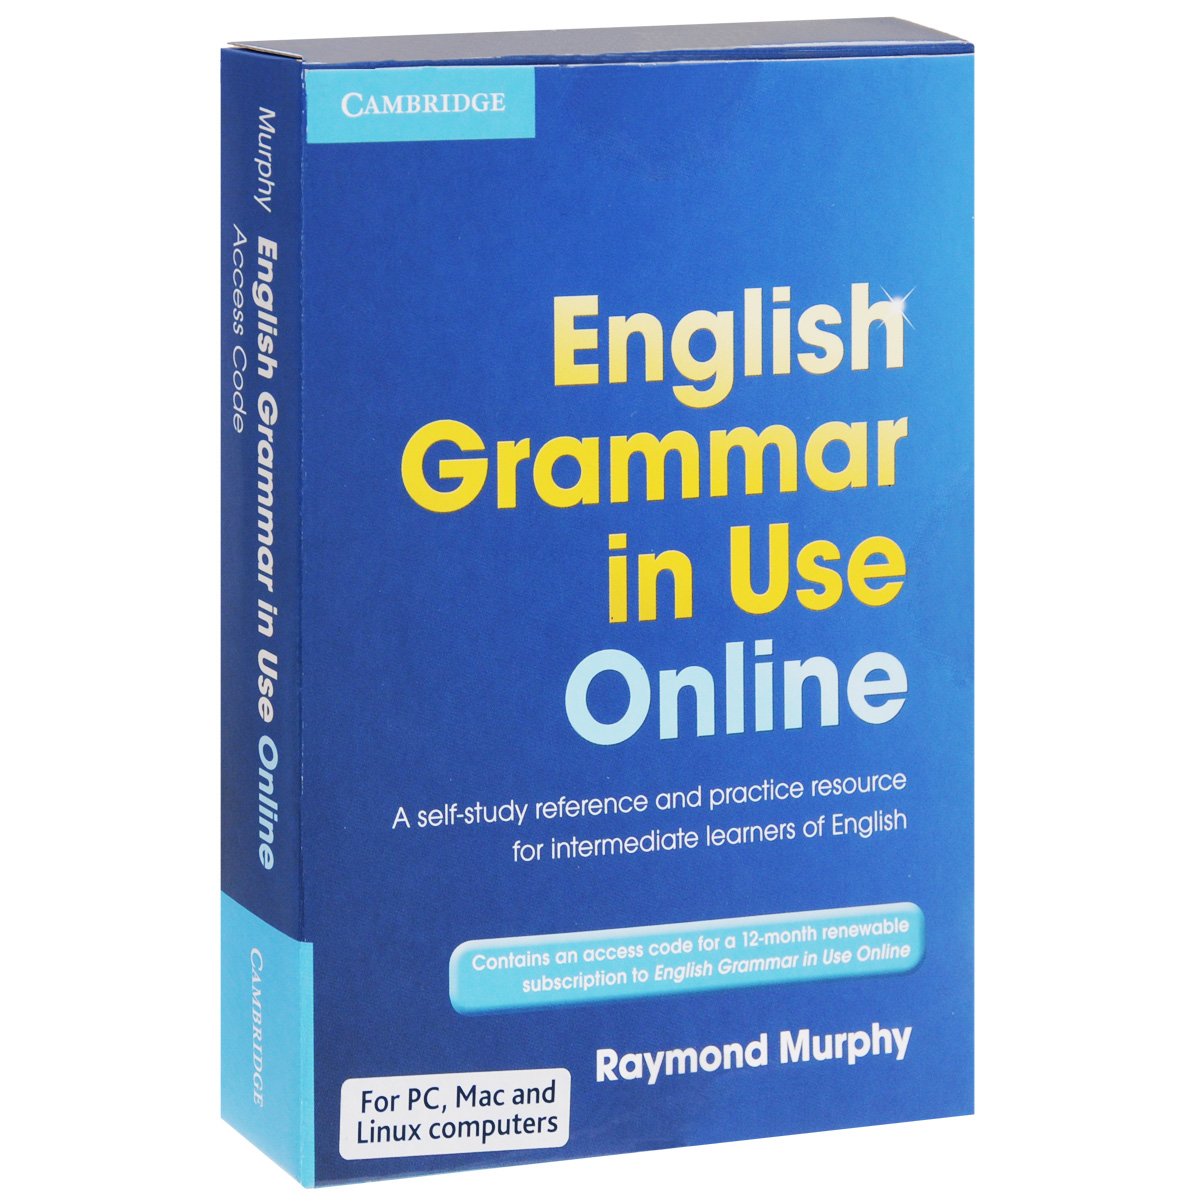 Access Code Card: English Grammar in Use Online: Access Code: A Self-Study Reference And Practice Resource for Intermediate Learners of English т ю дроздова а и берестова н а курочкина the keys english grammar reference